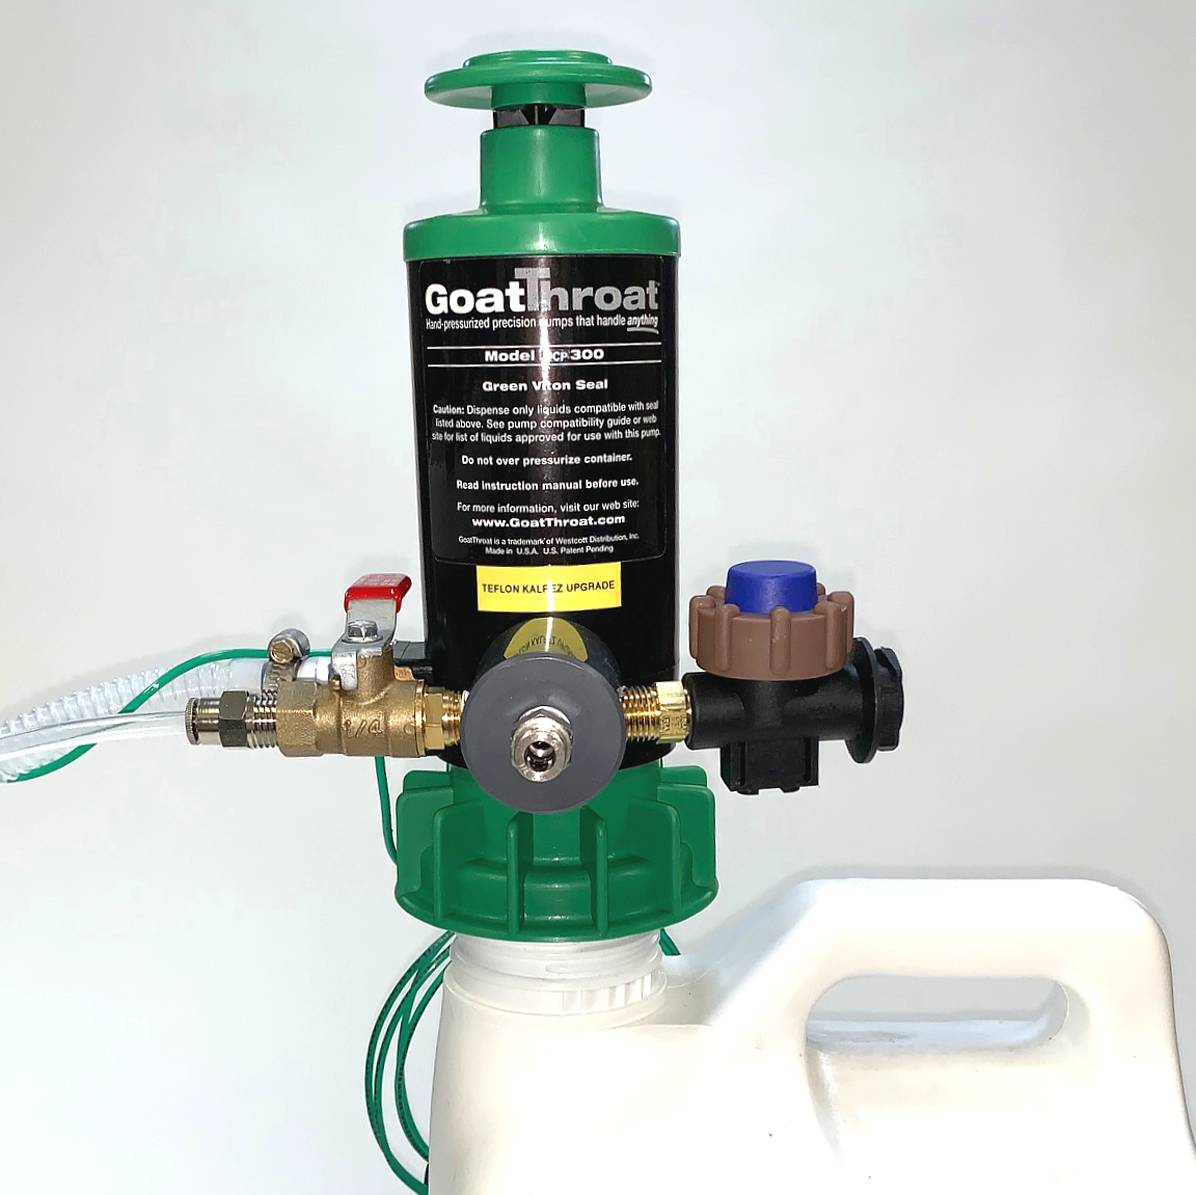 GoatThroat Pumps makes workplaces safer and more sustainable